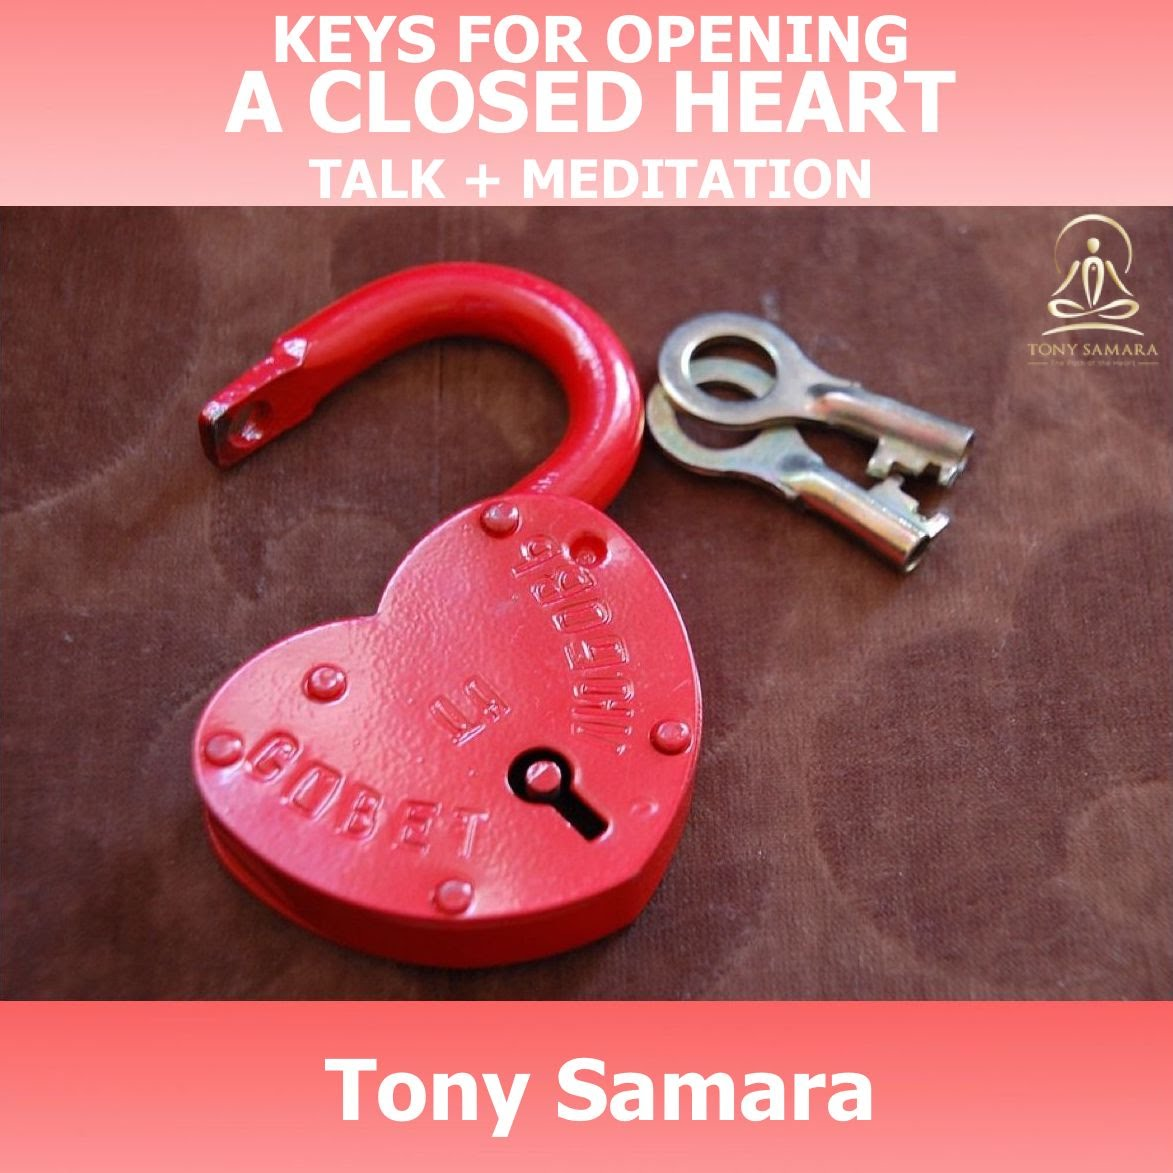 Meditation: Keys for Opening A Closed Heart Talk + Meditation - Tony Samara Meditation